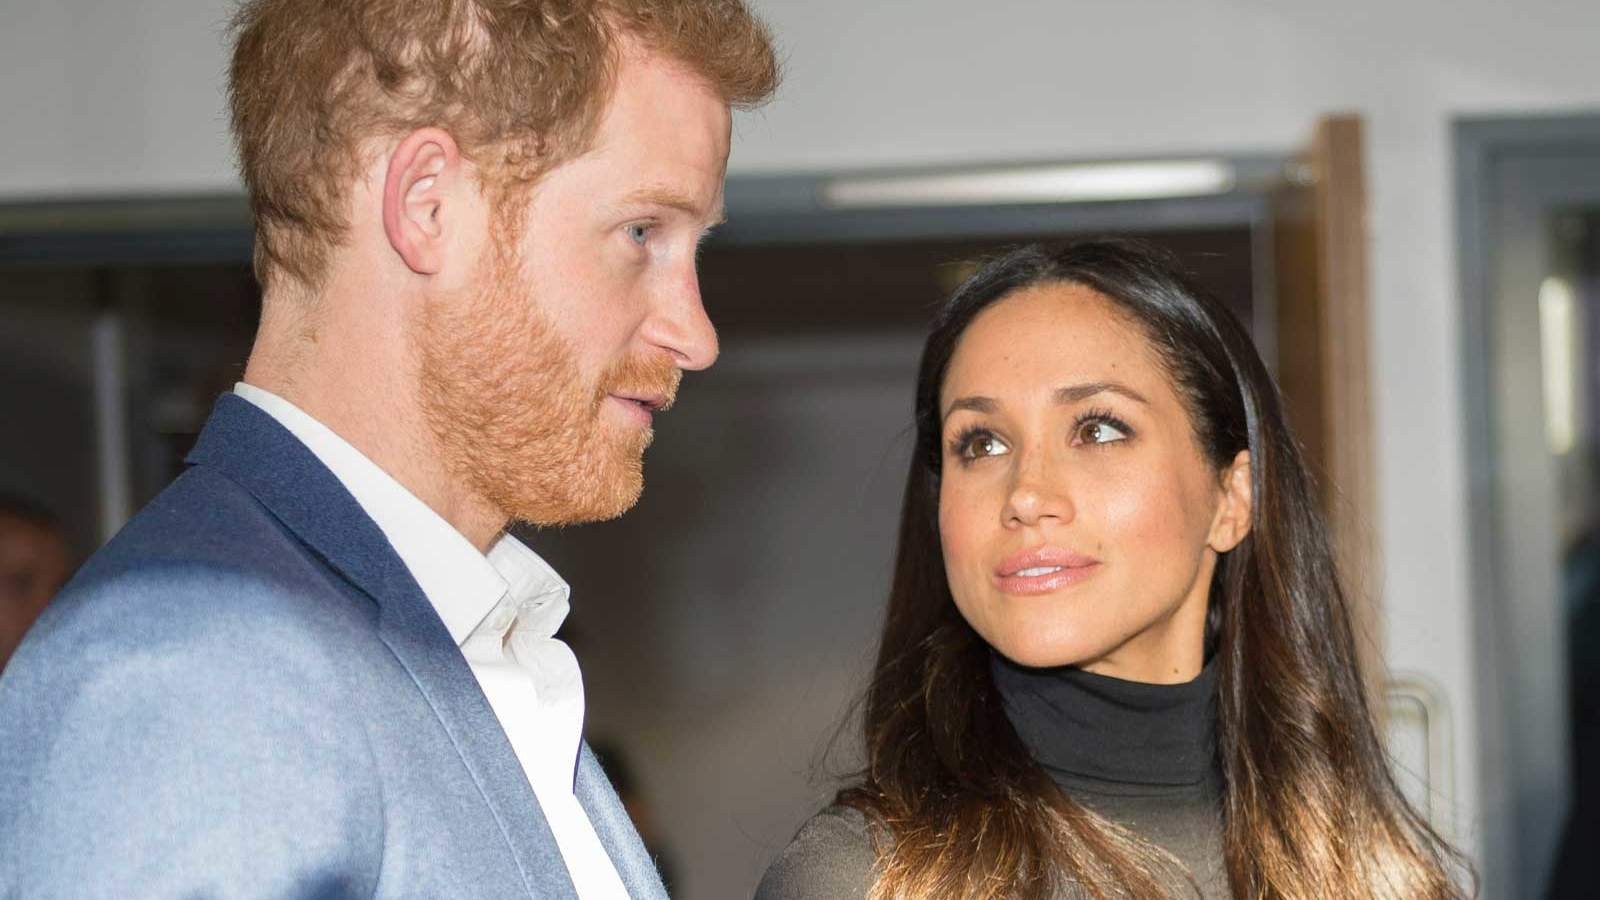 The Look of Love! See Prince Harry and Meghan Markle's Stunning Official Engagement Photos